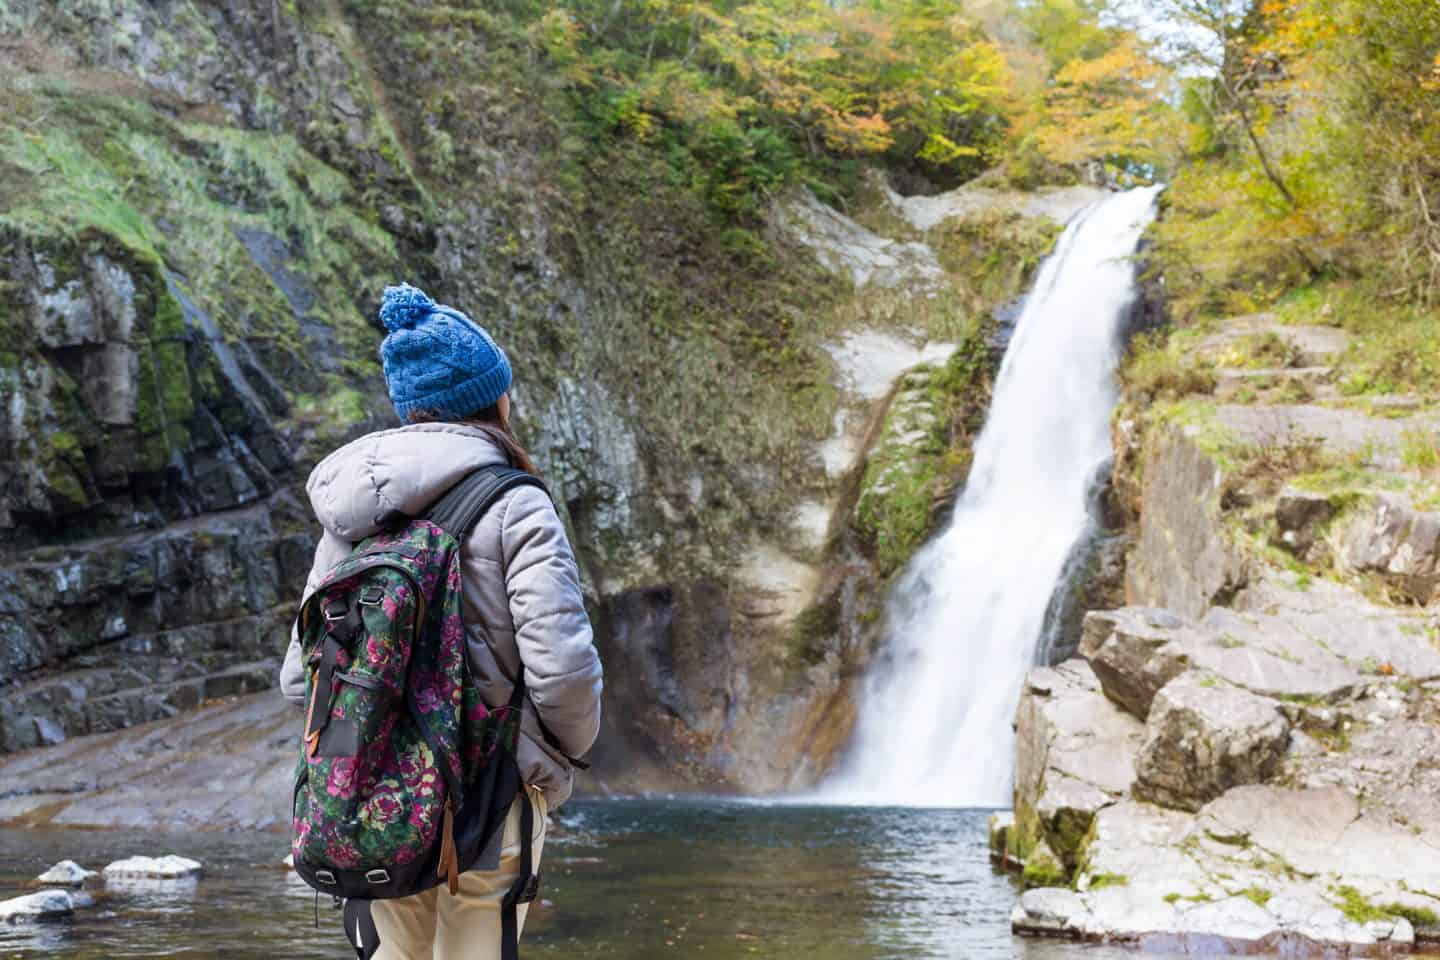 5 Family-Friendly Products for Safe Outdoor Adventures